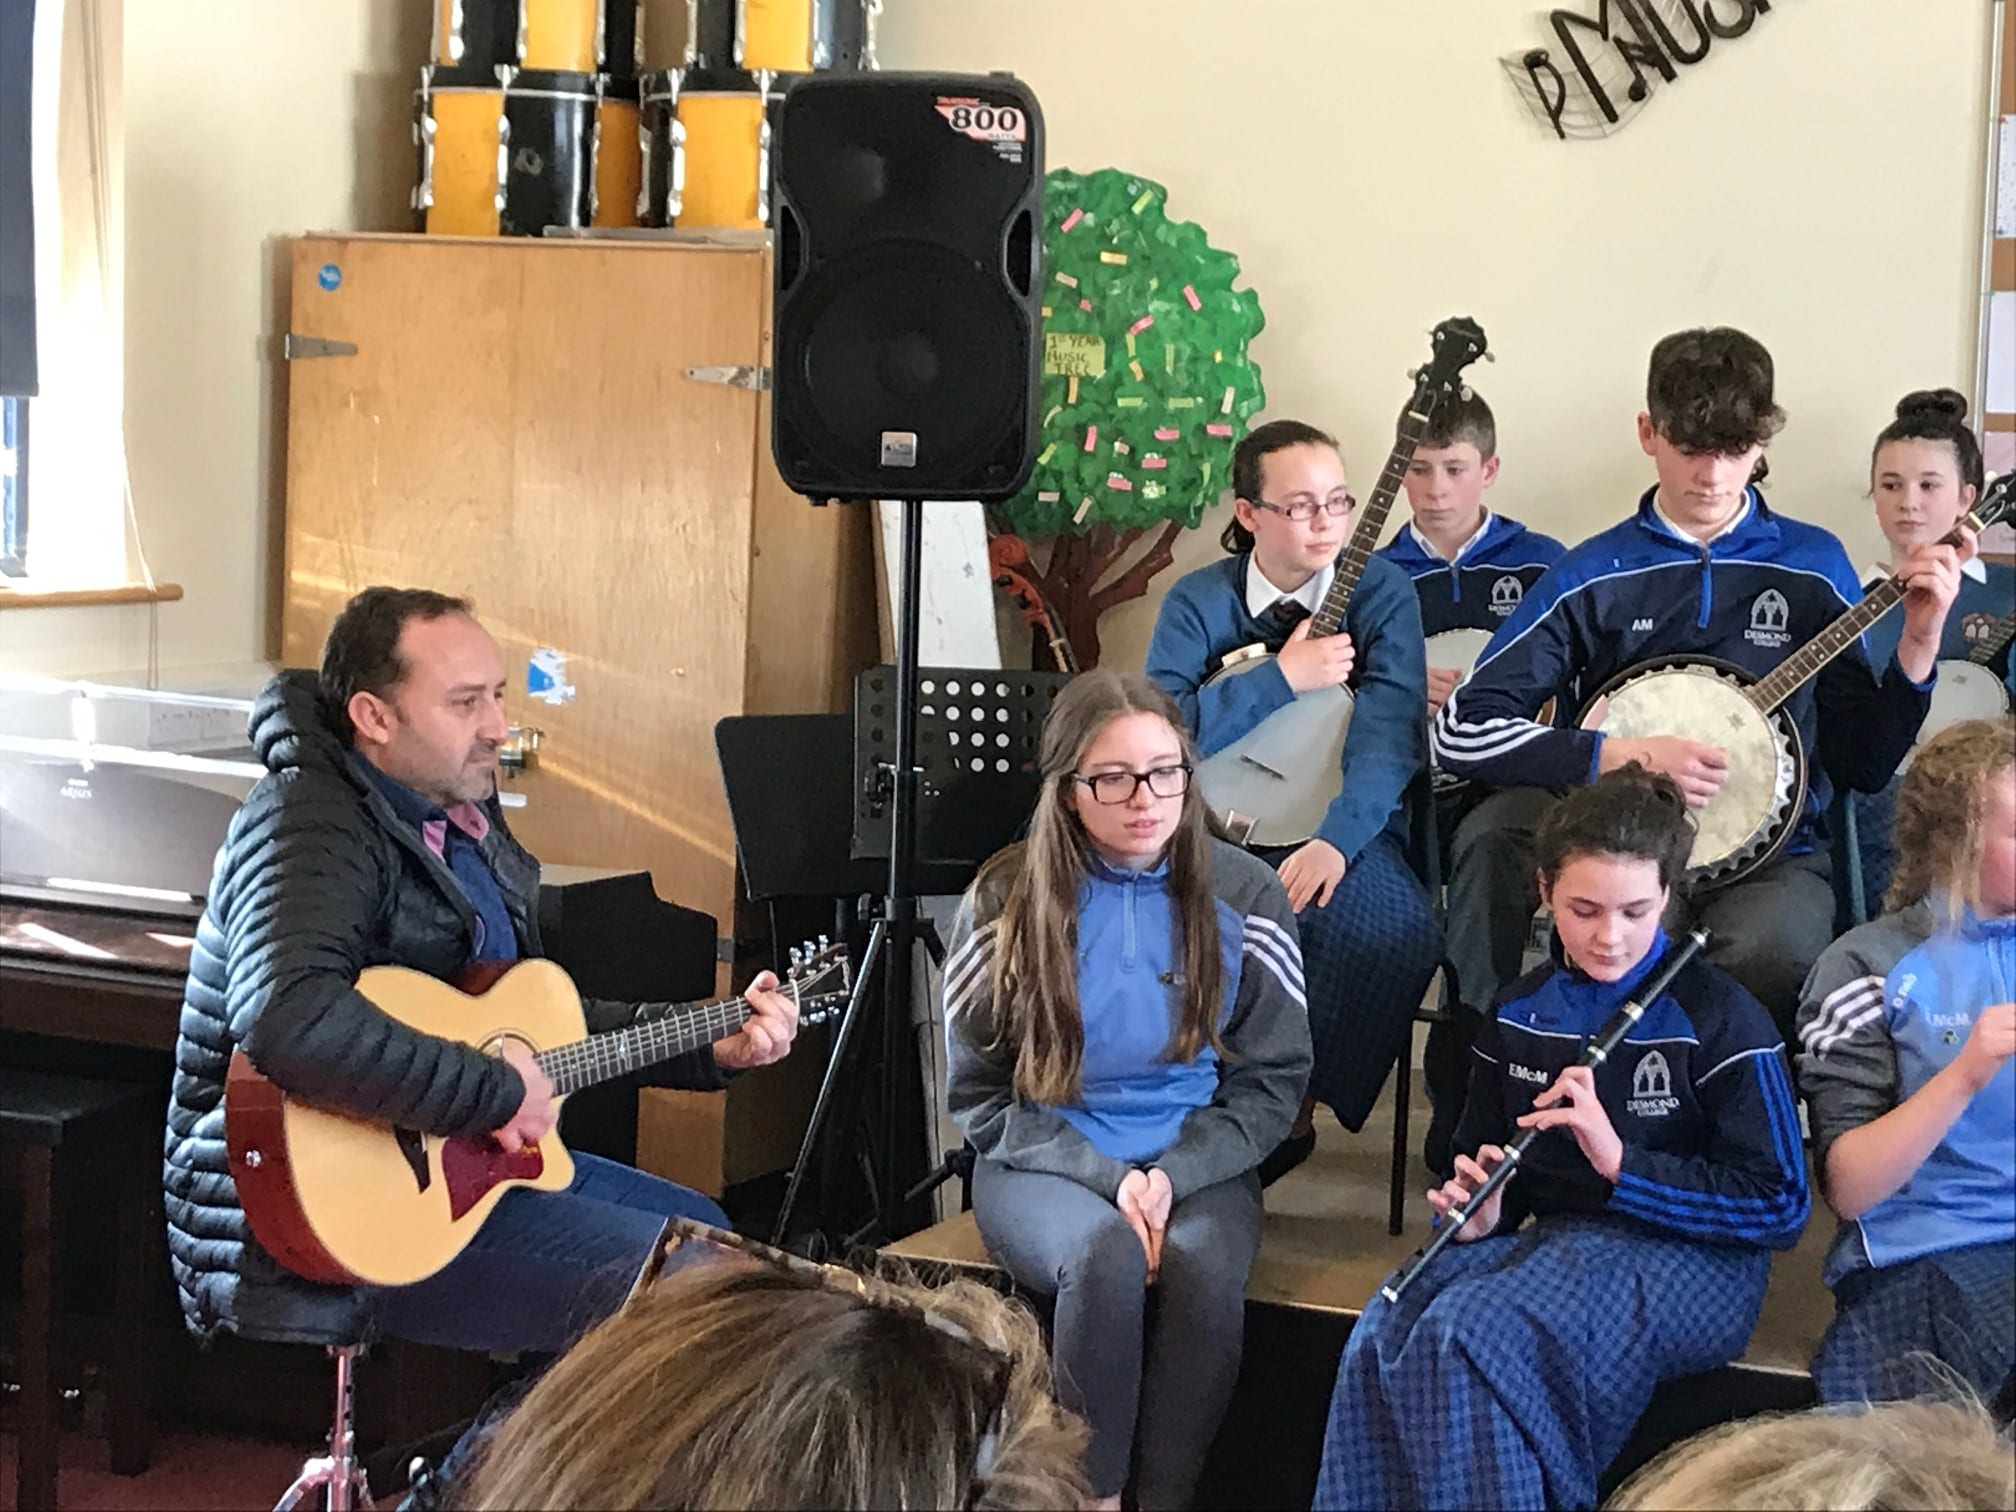 Mr José Goterris Carratalá (music teacher from Spain) playing some Irish trad music with students from Desmond College on his visit to the school as part of a European Erasmus Programme.